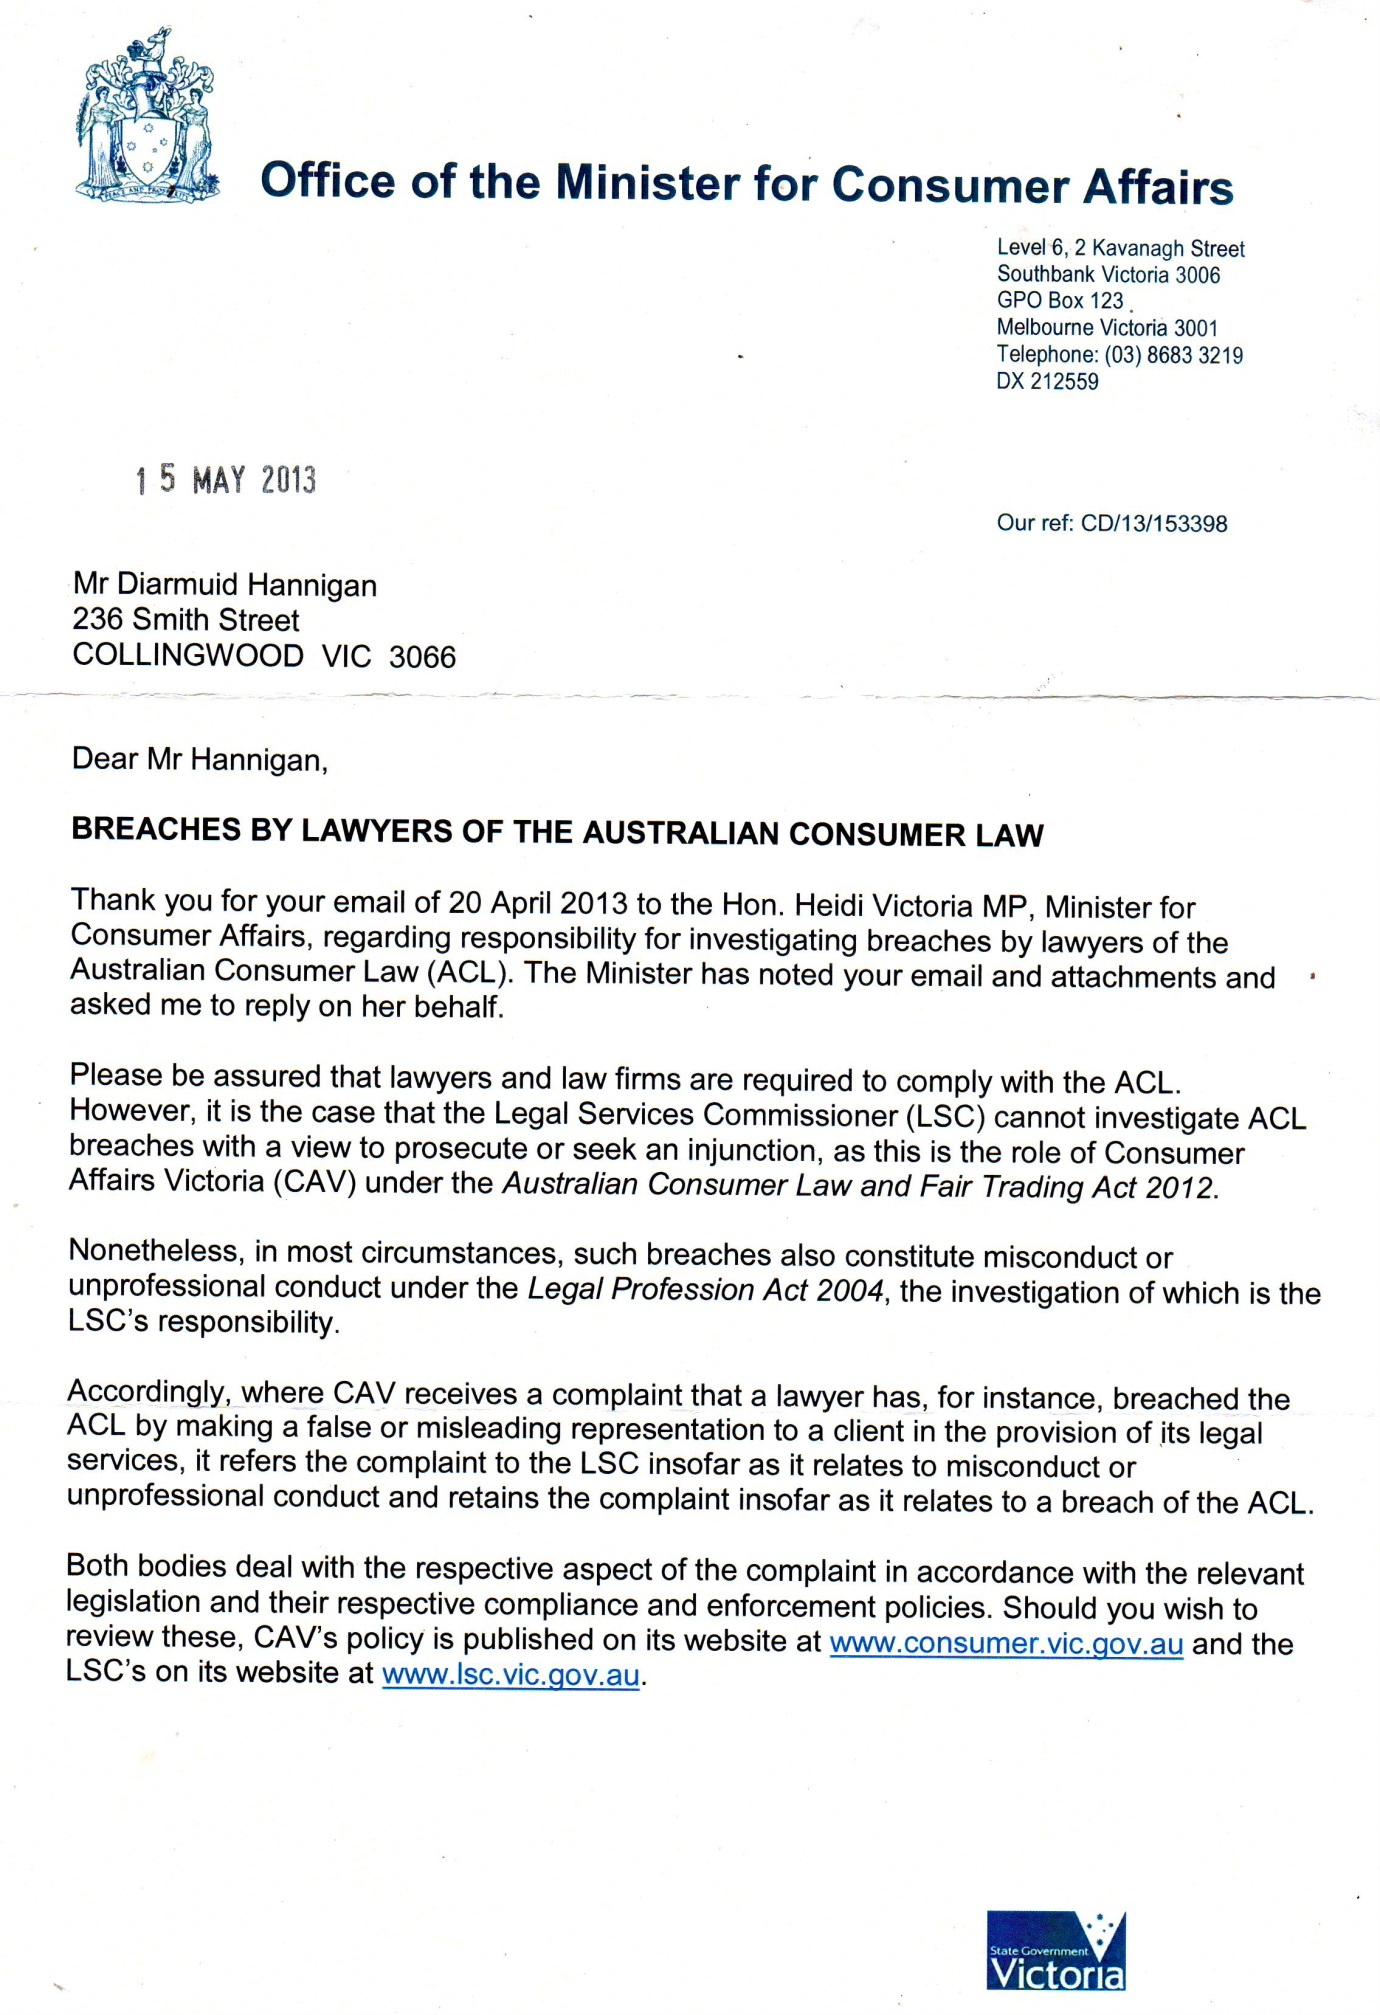 Consumer Affairs Victoria (CAV) consumer Go and seek legal advice and get eaten by another vulture.consumer reply may 15 2013